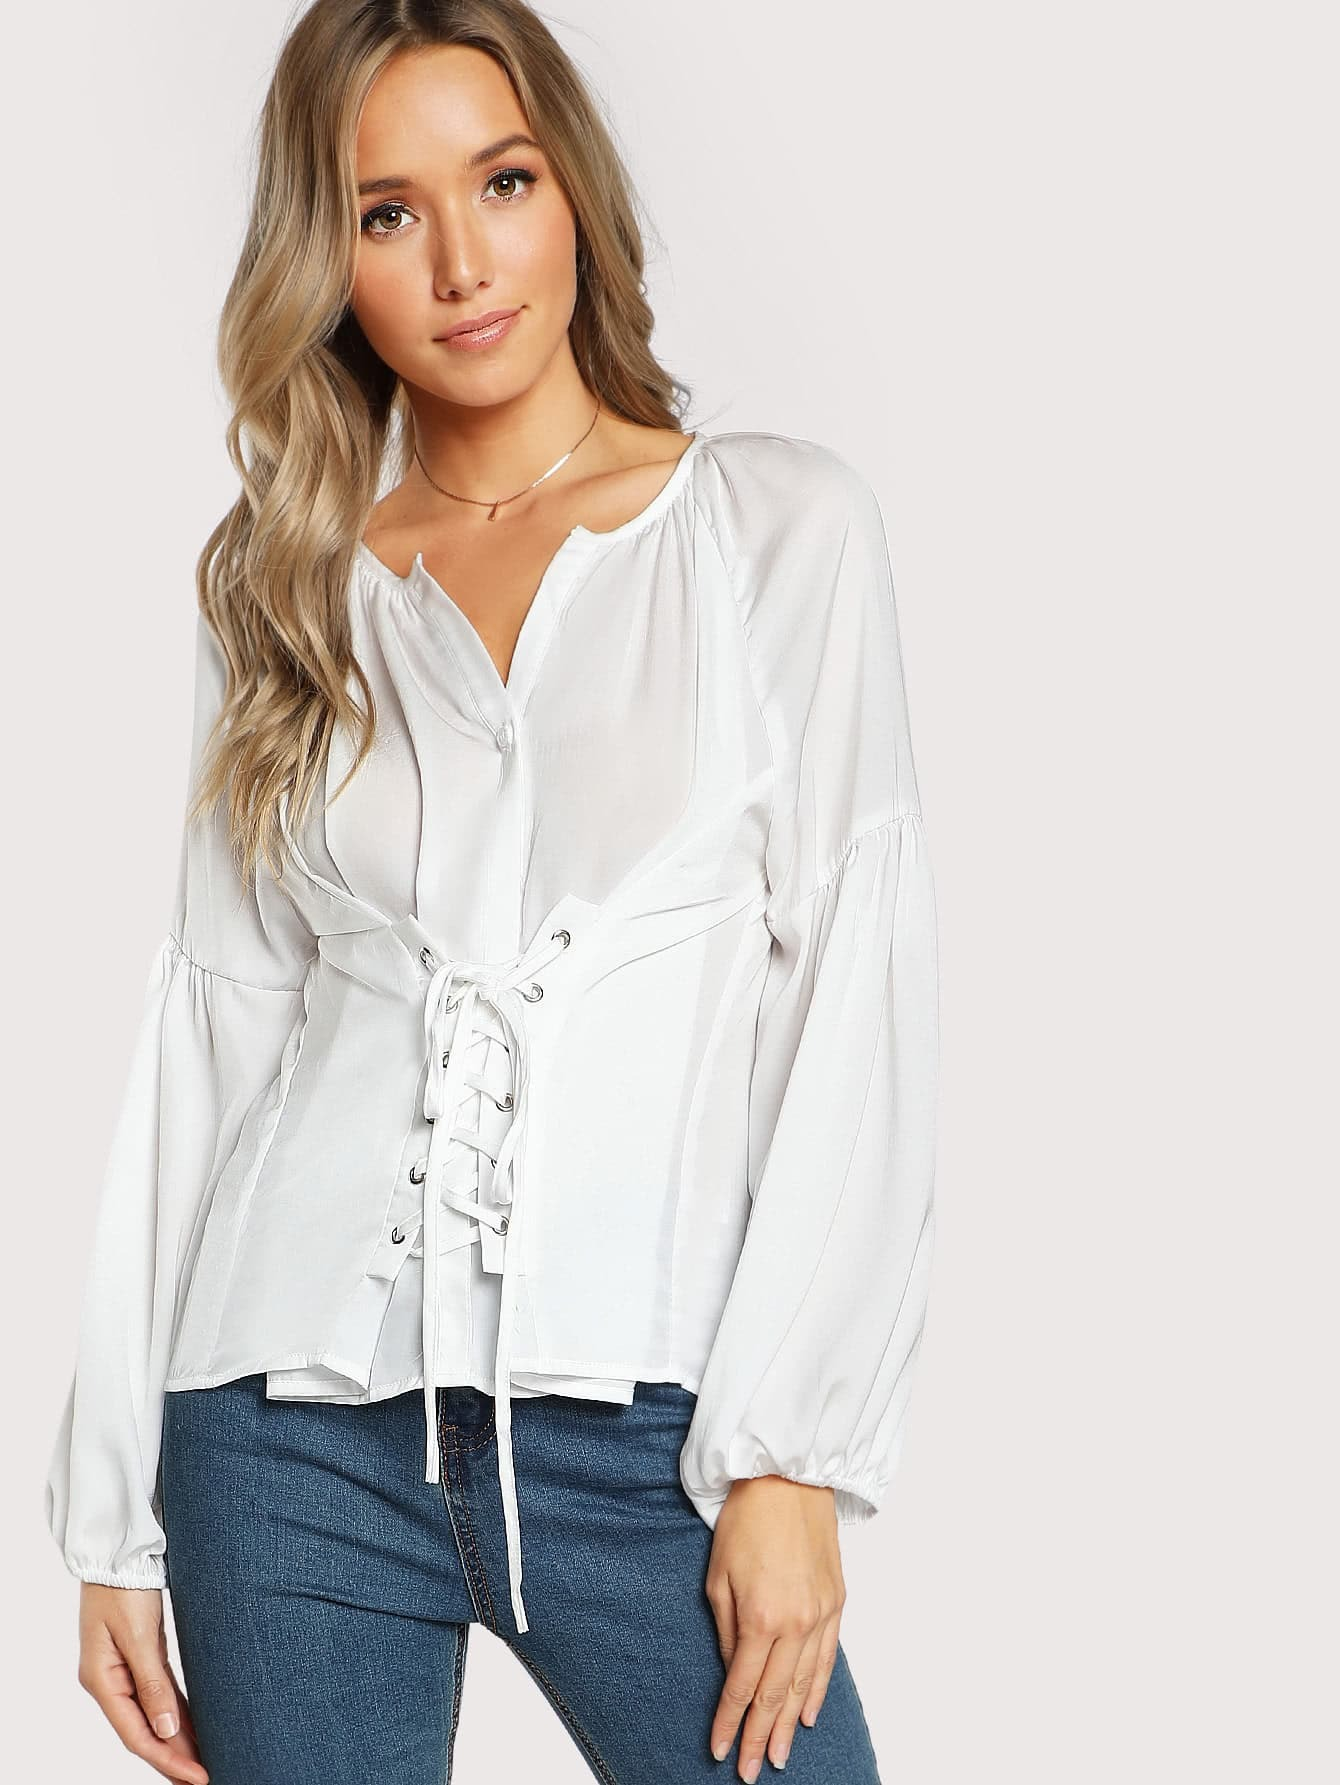 VINCE NWT Bright White Semi Sheer Casual Long Sleeve Button Down Shirt Size 4 See more like this Womens Cotton Linen Blouse Long Sleeve Tops Sheer Button Down Casual Shirt S-XL Brand New.